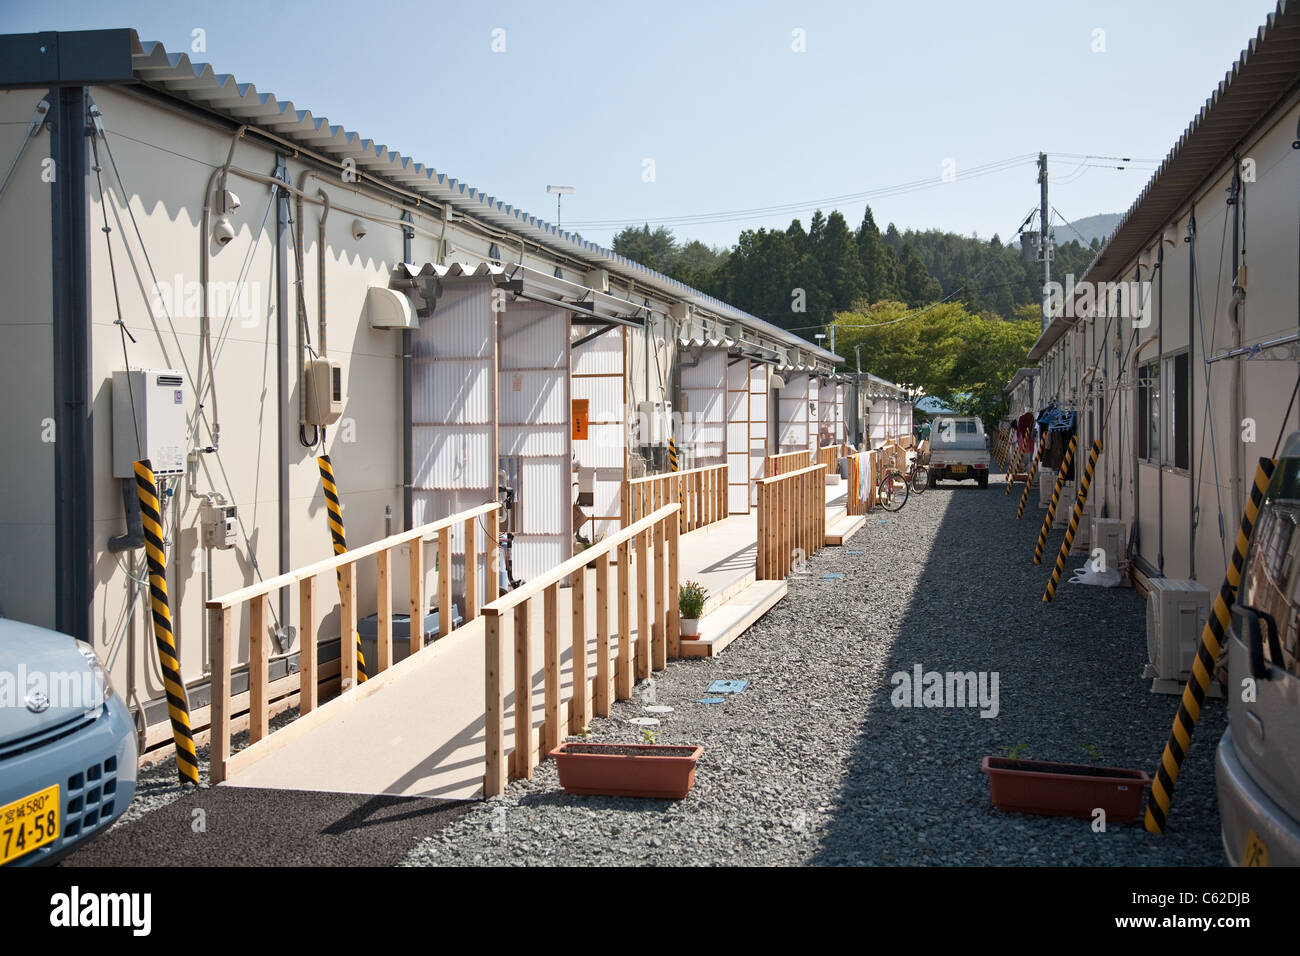 tsunami victims stockfotos tsunami victims bilder alamy. Black Bedroom Furniture Sets. Home Design Ideas